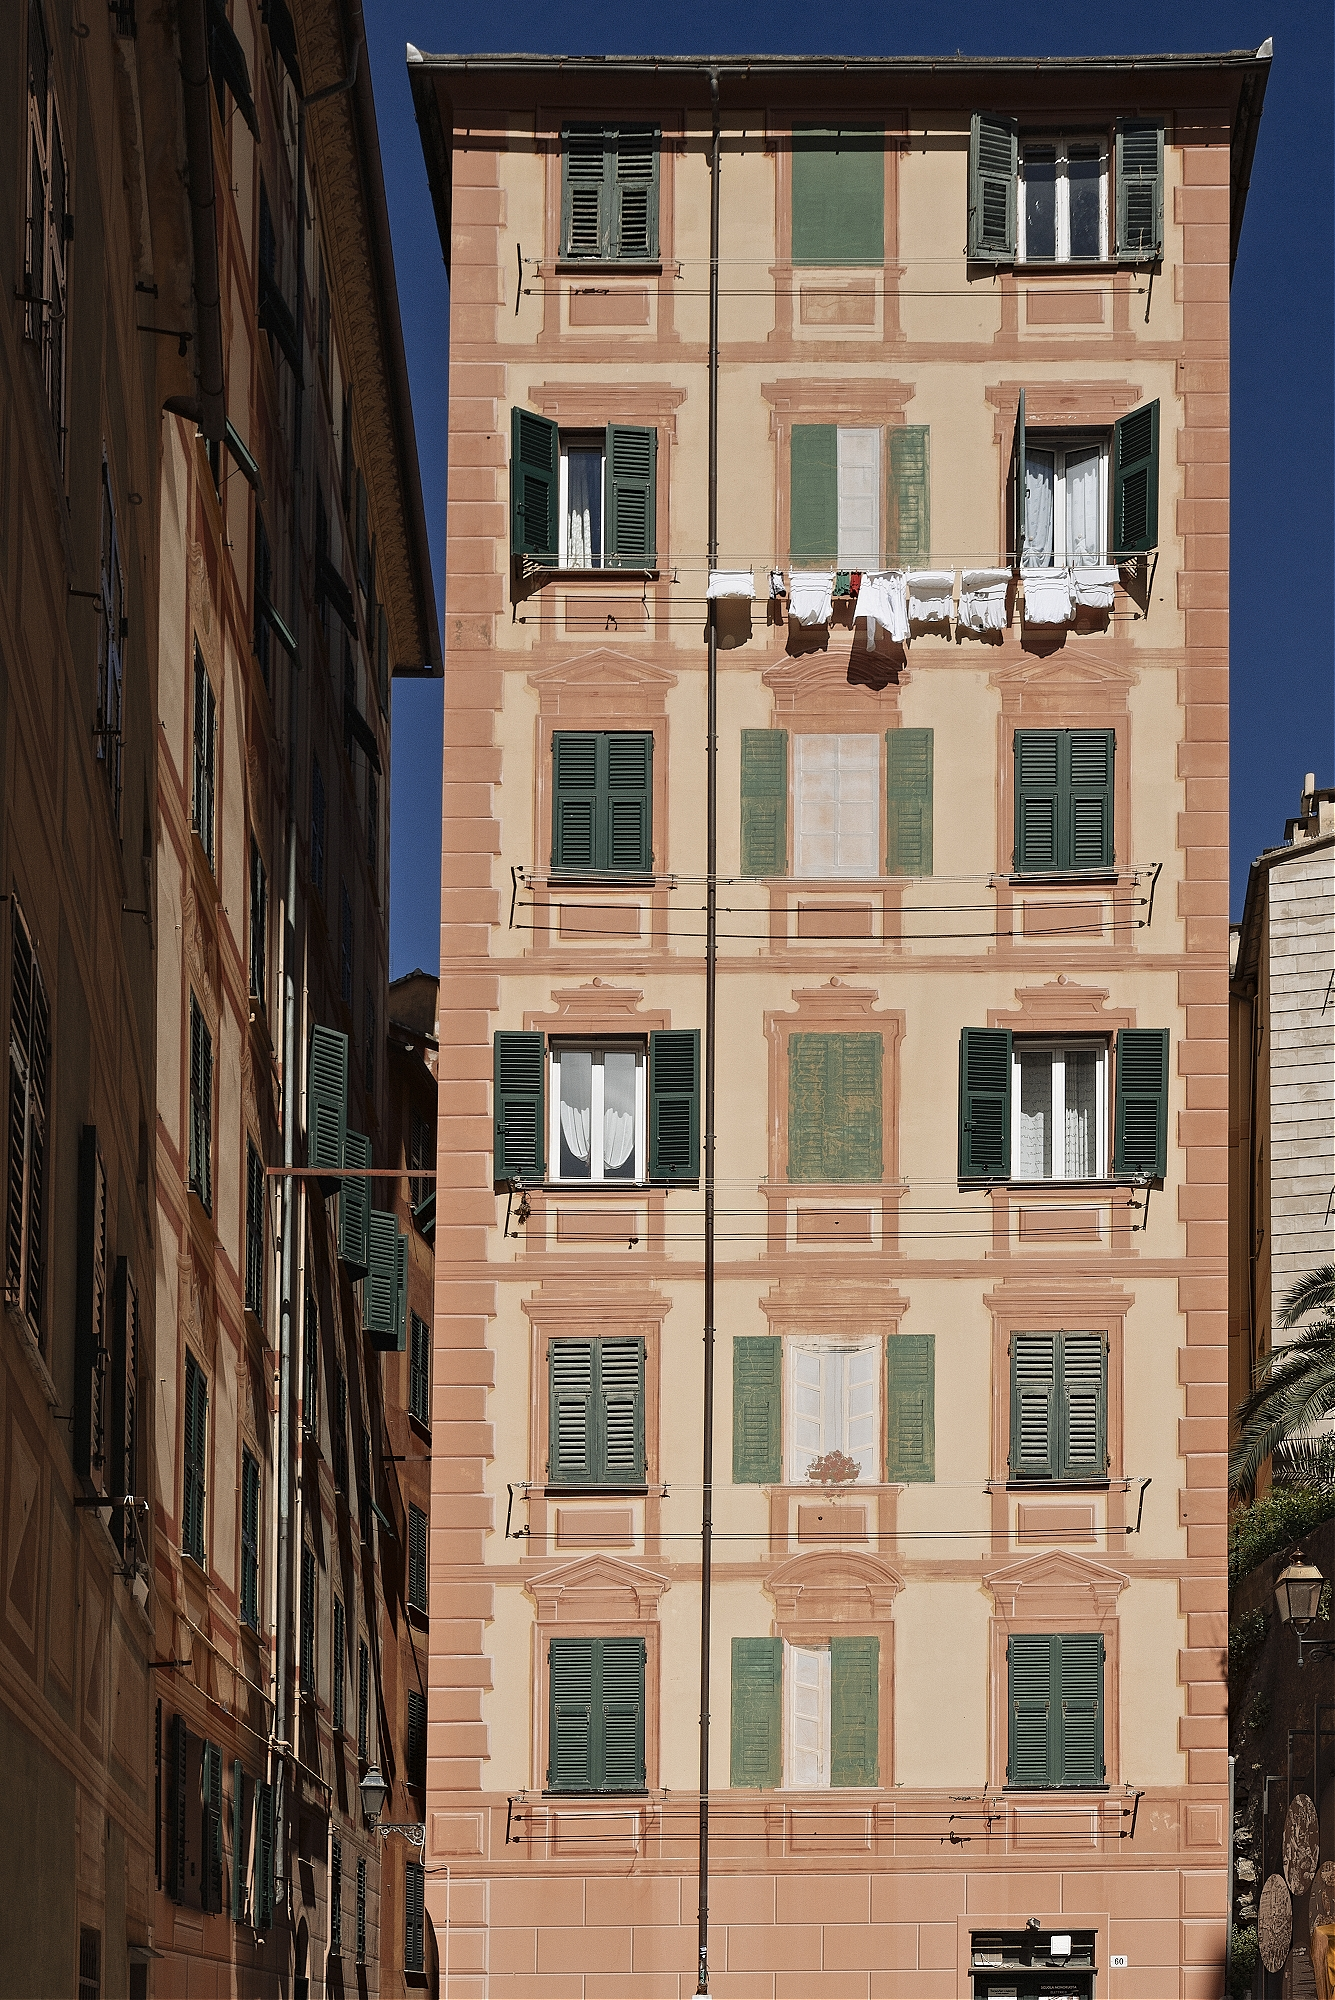 Washing Day. Camogli, Liguria